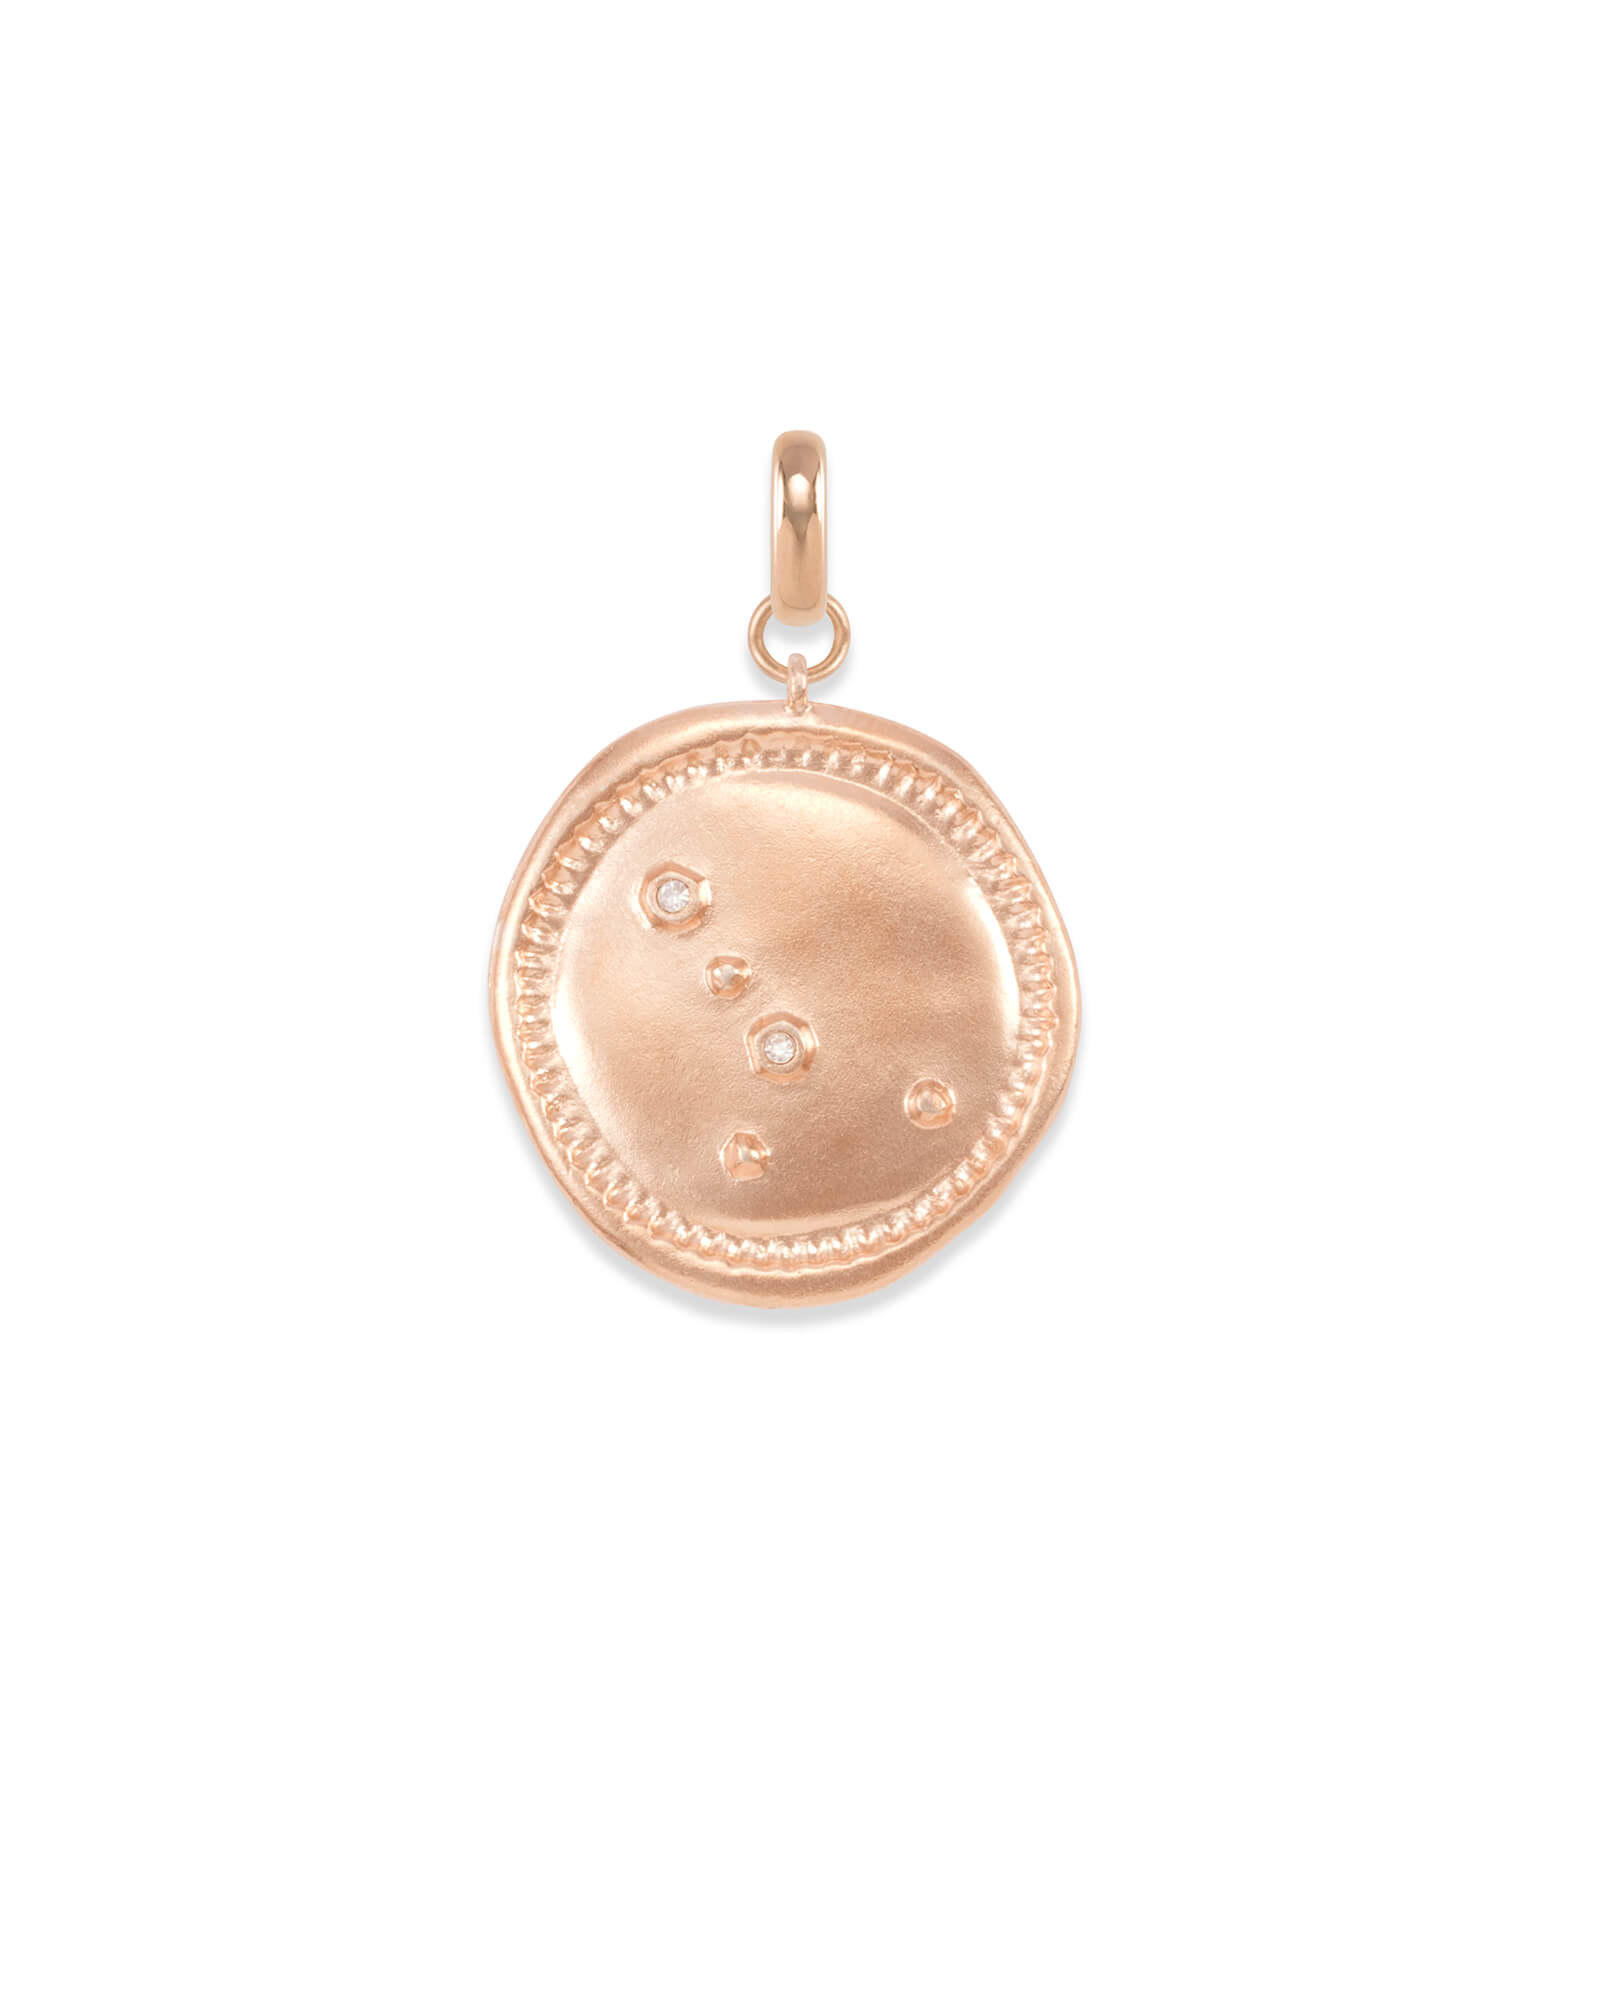 Cancer Coin Charm in Rose Gold